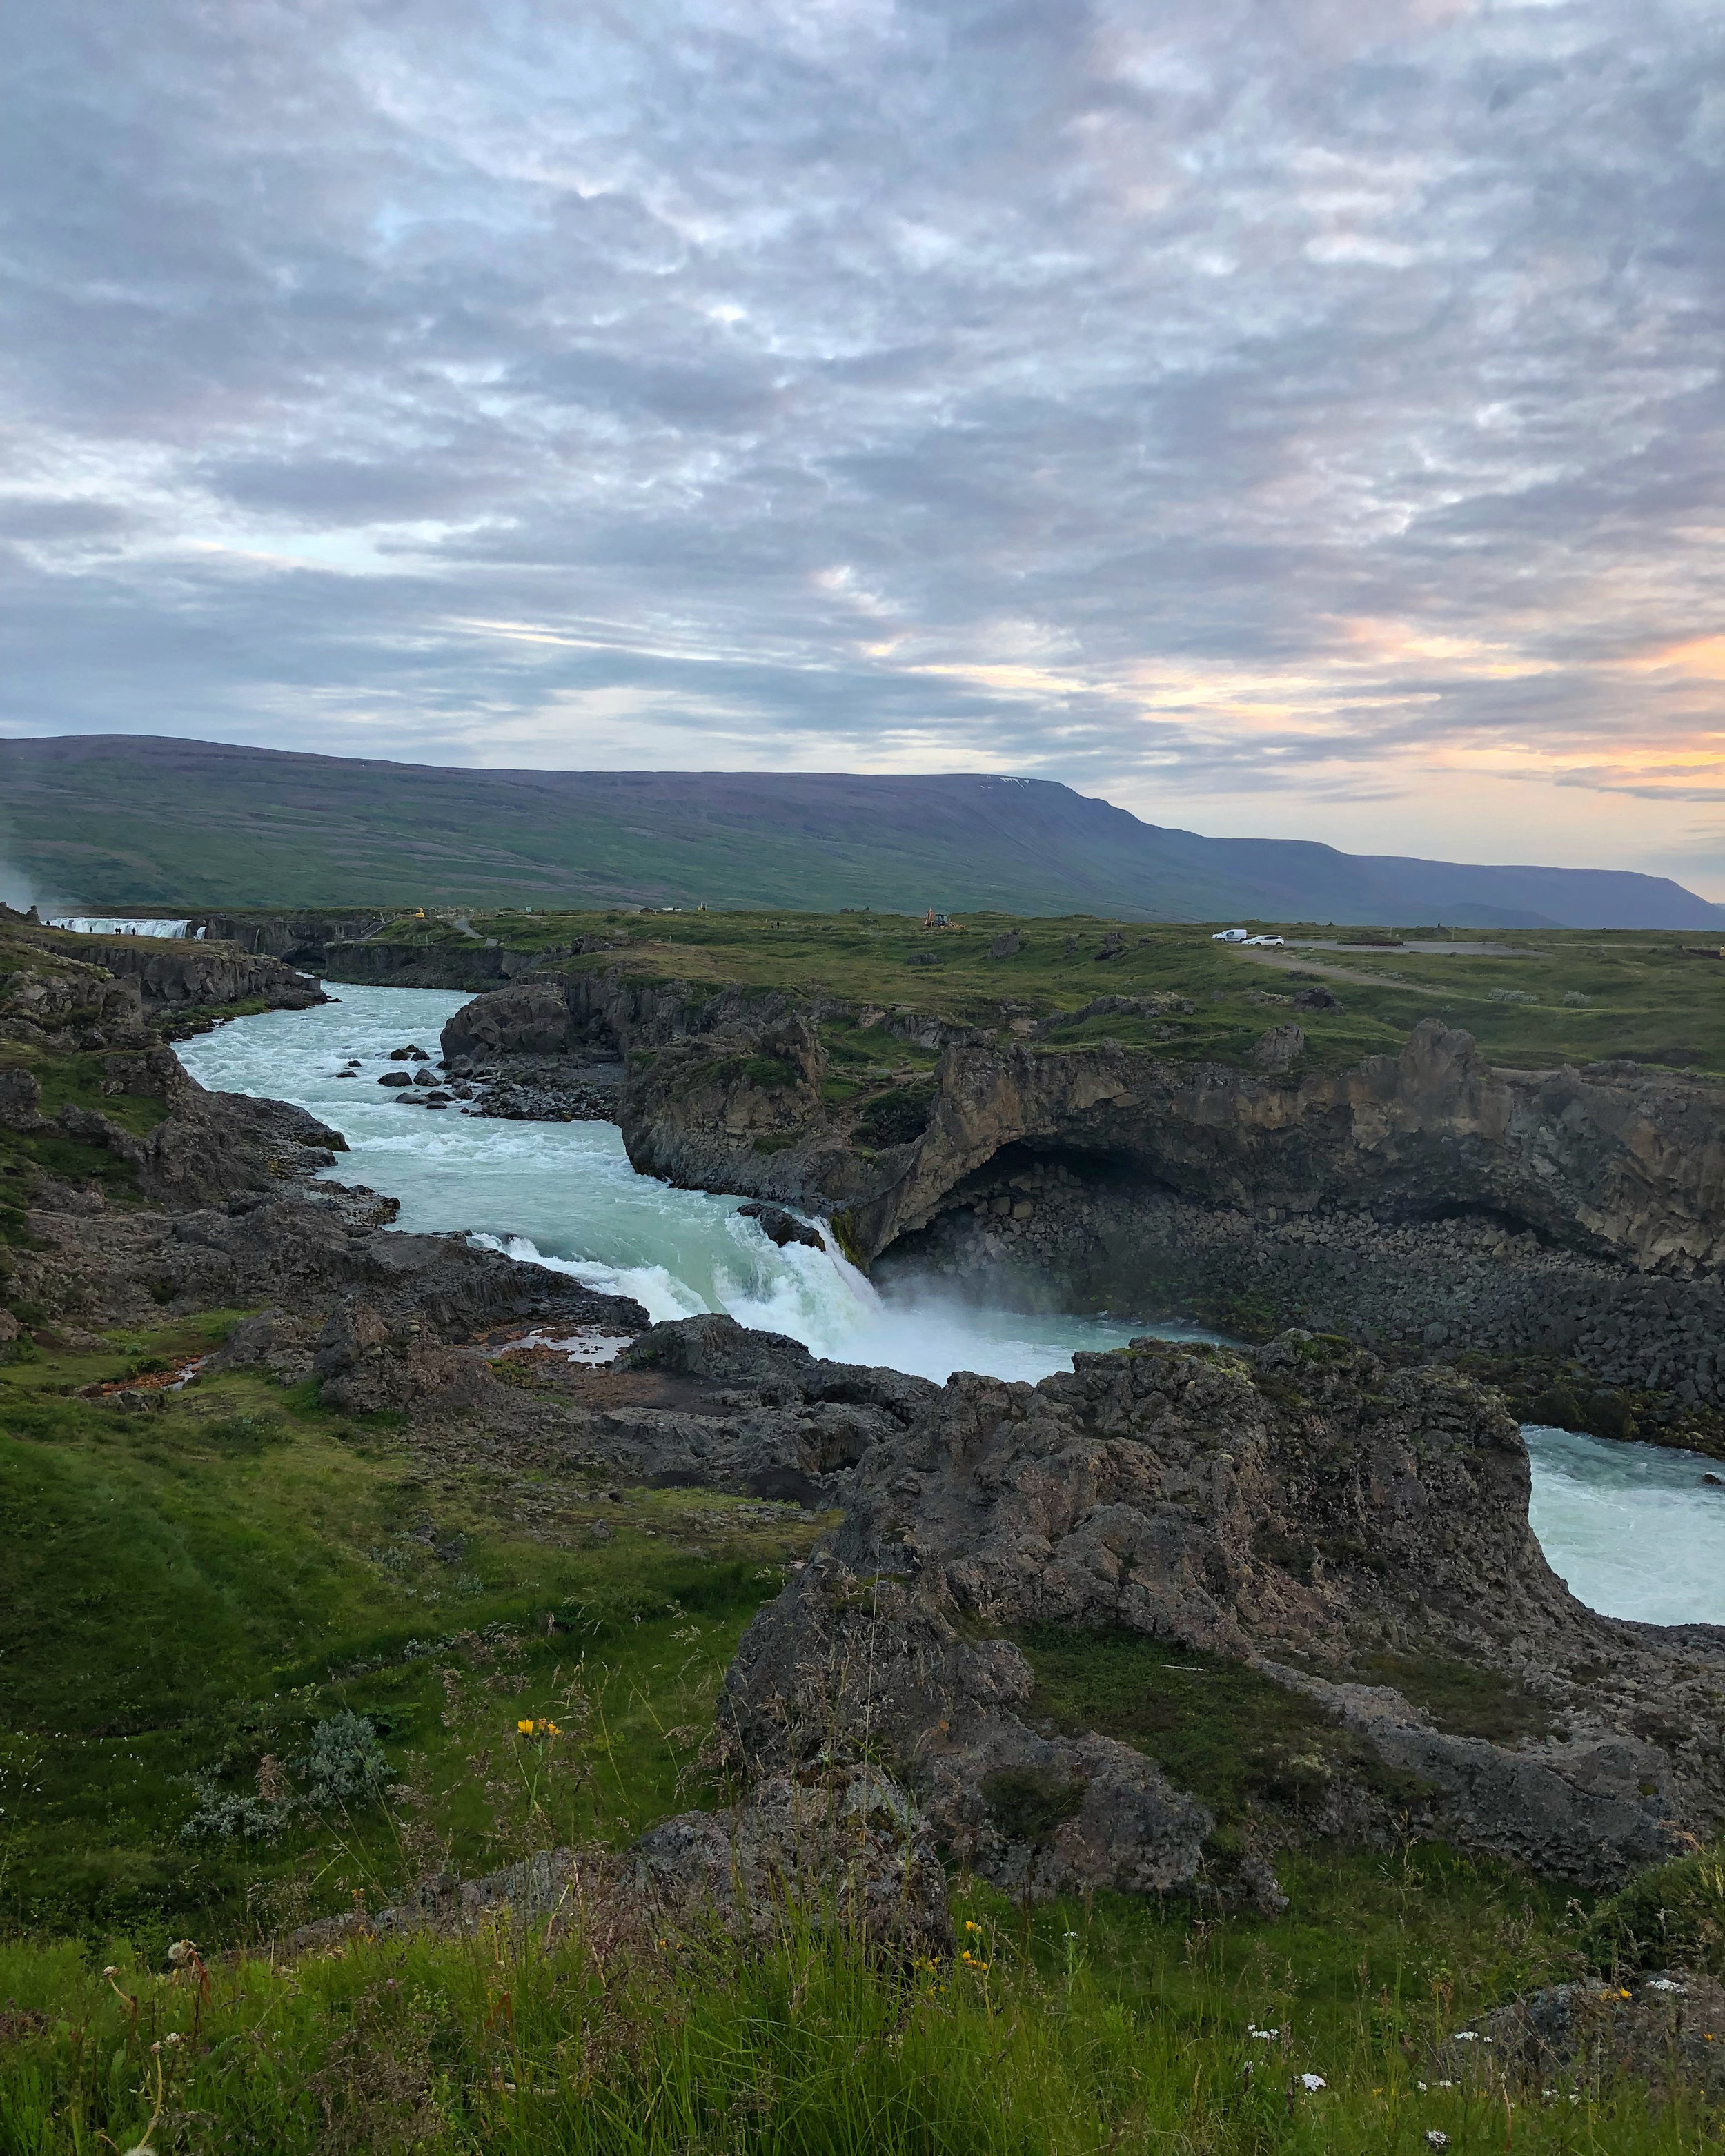 The colorful view of Goðafoss, the waterfall of the gods